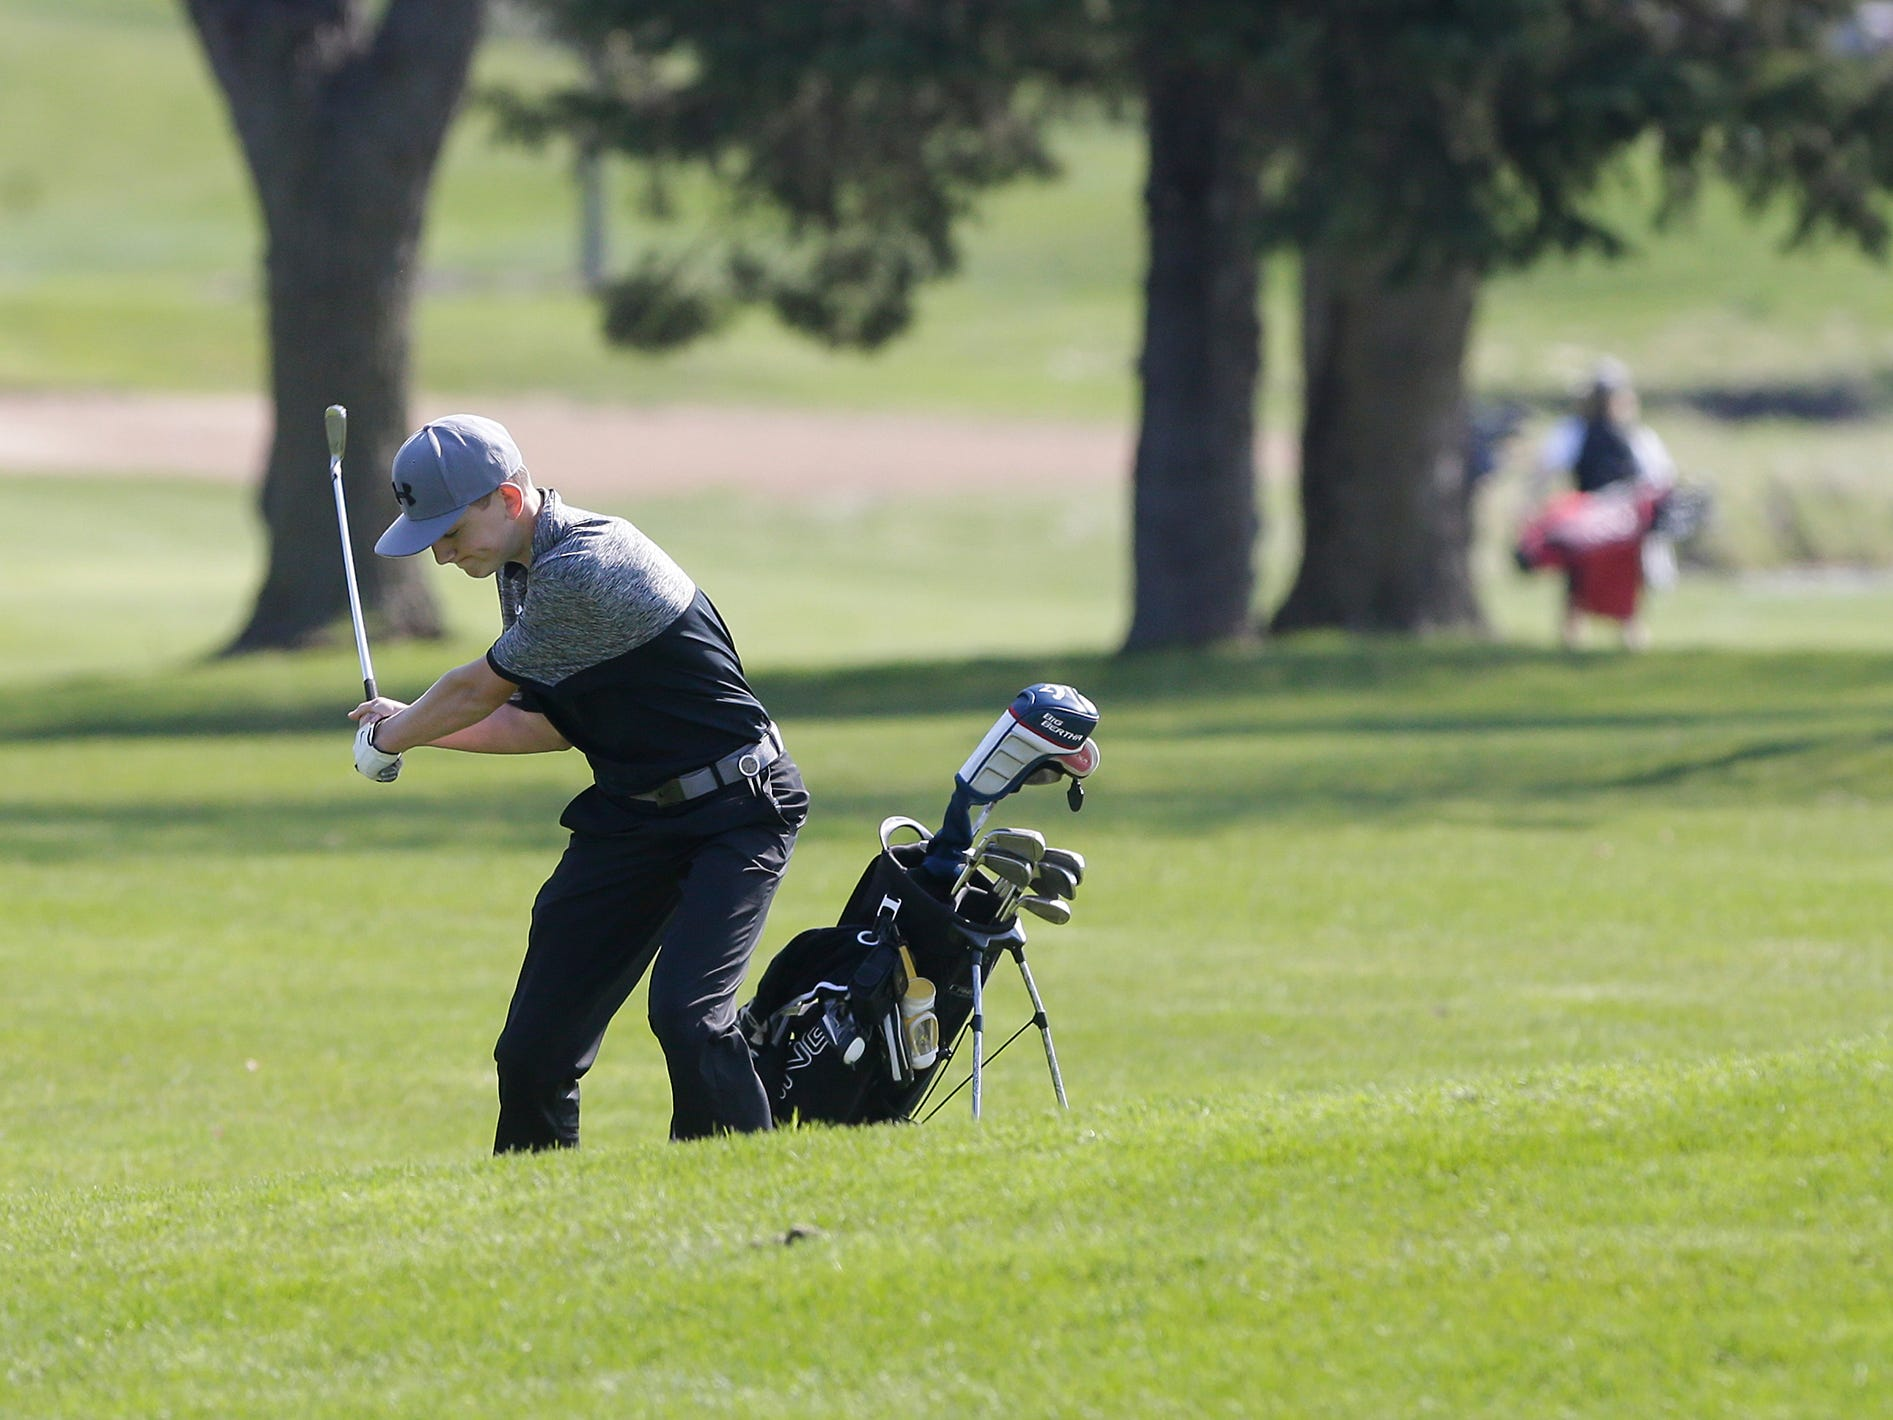 Toren Holtz of Mosinee High School competes in the Fond du Lac High School golf invite Saturday, May 4, 2019 at Rolling Meadows Golf Course in Fond du Lac, Wis. Doug Raflik/USA TODAY NETWORK-Wisconsin